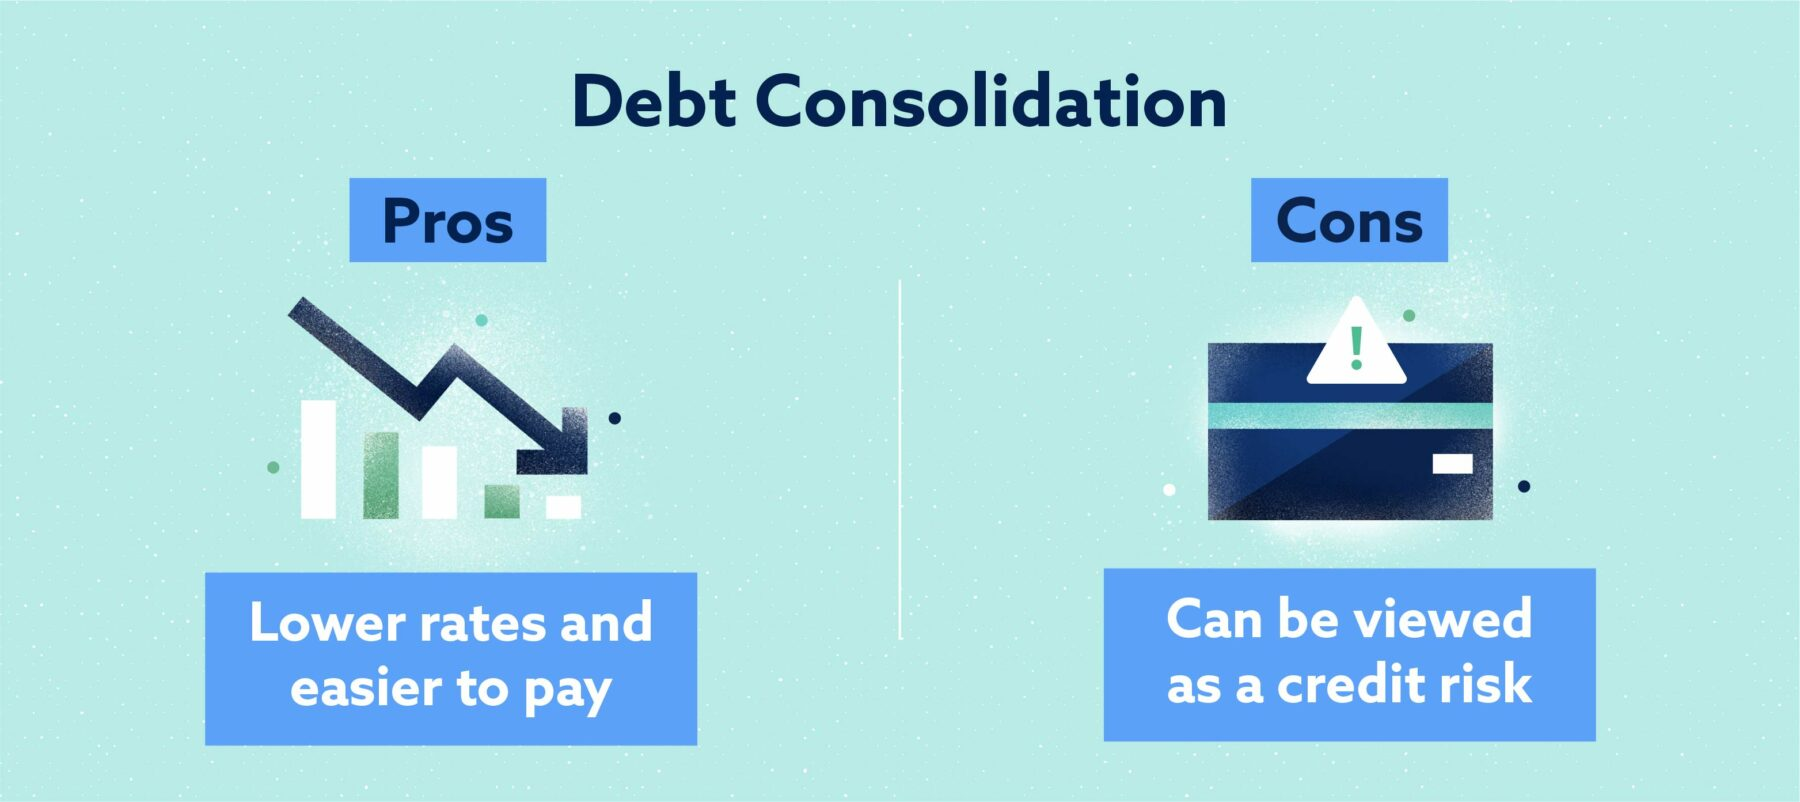 Debt Consolidation Image